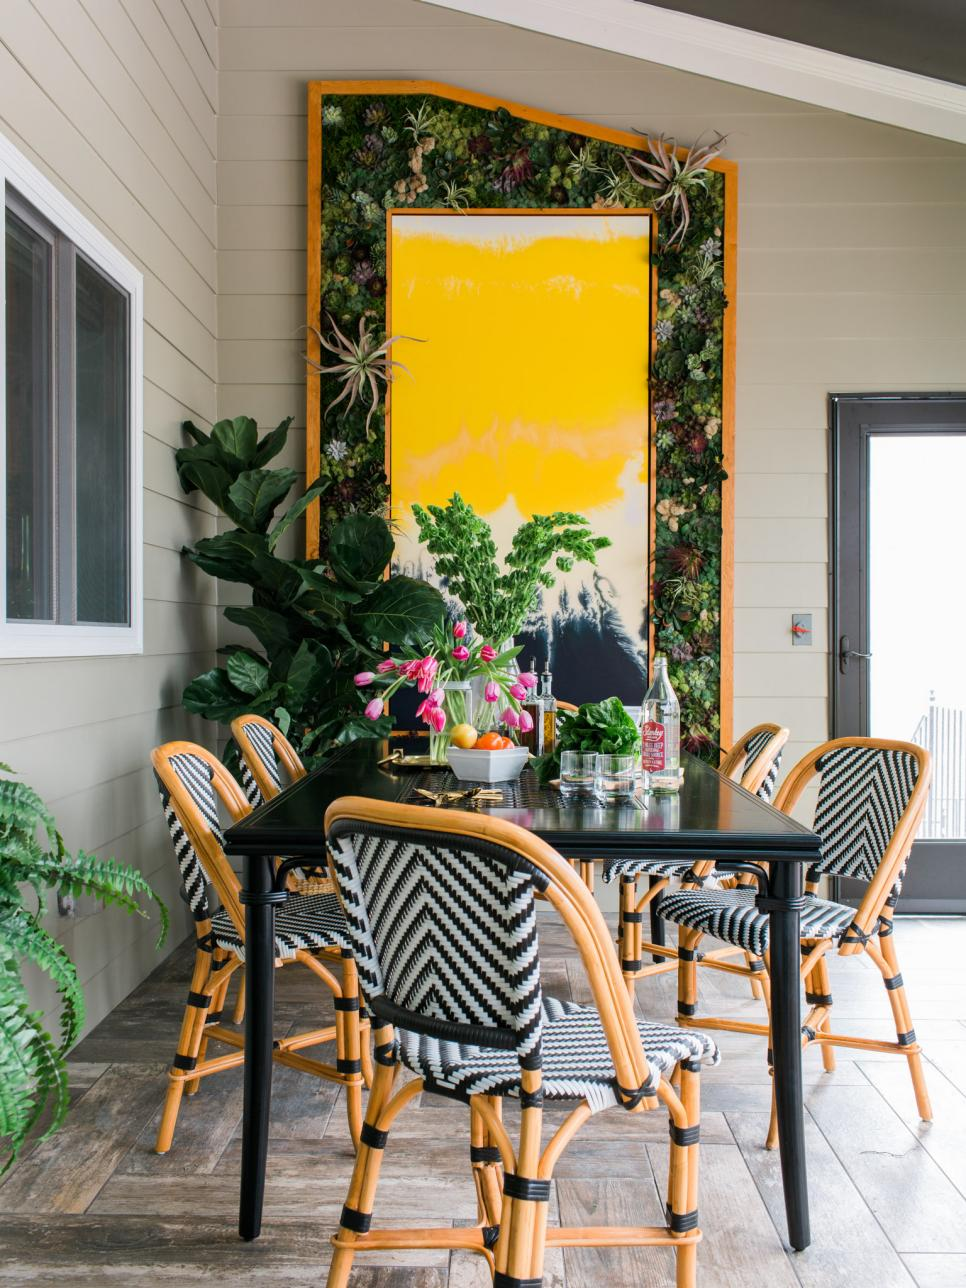 The Living Wall With Plants Takes Up The Entire Back Wall Of The Screened  Porch,